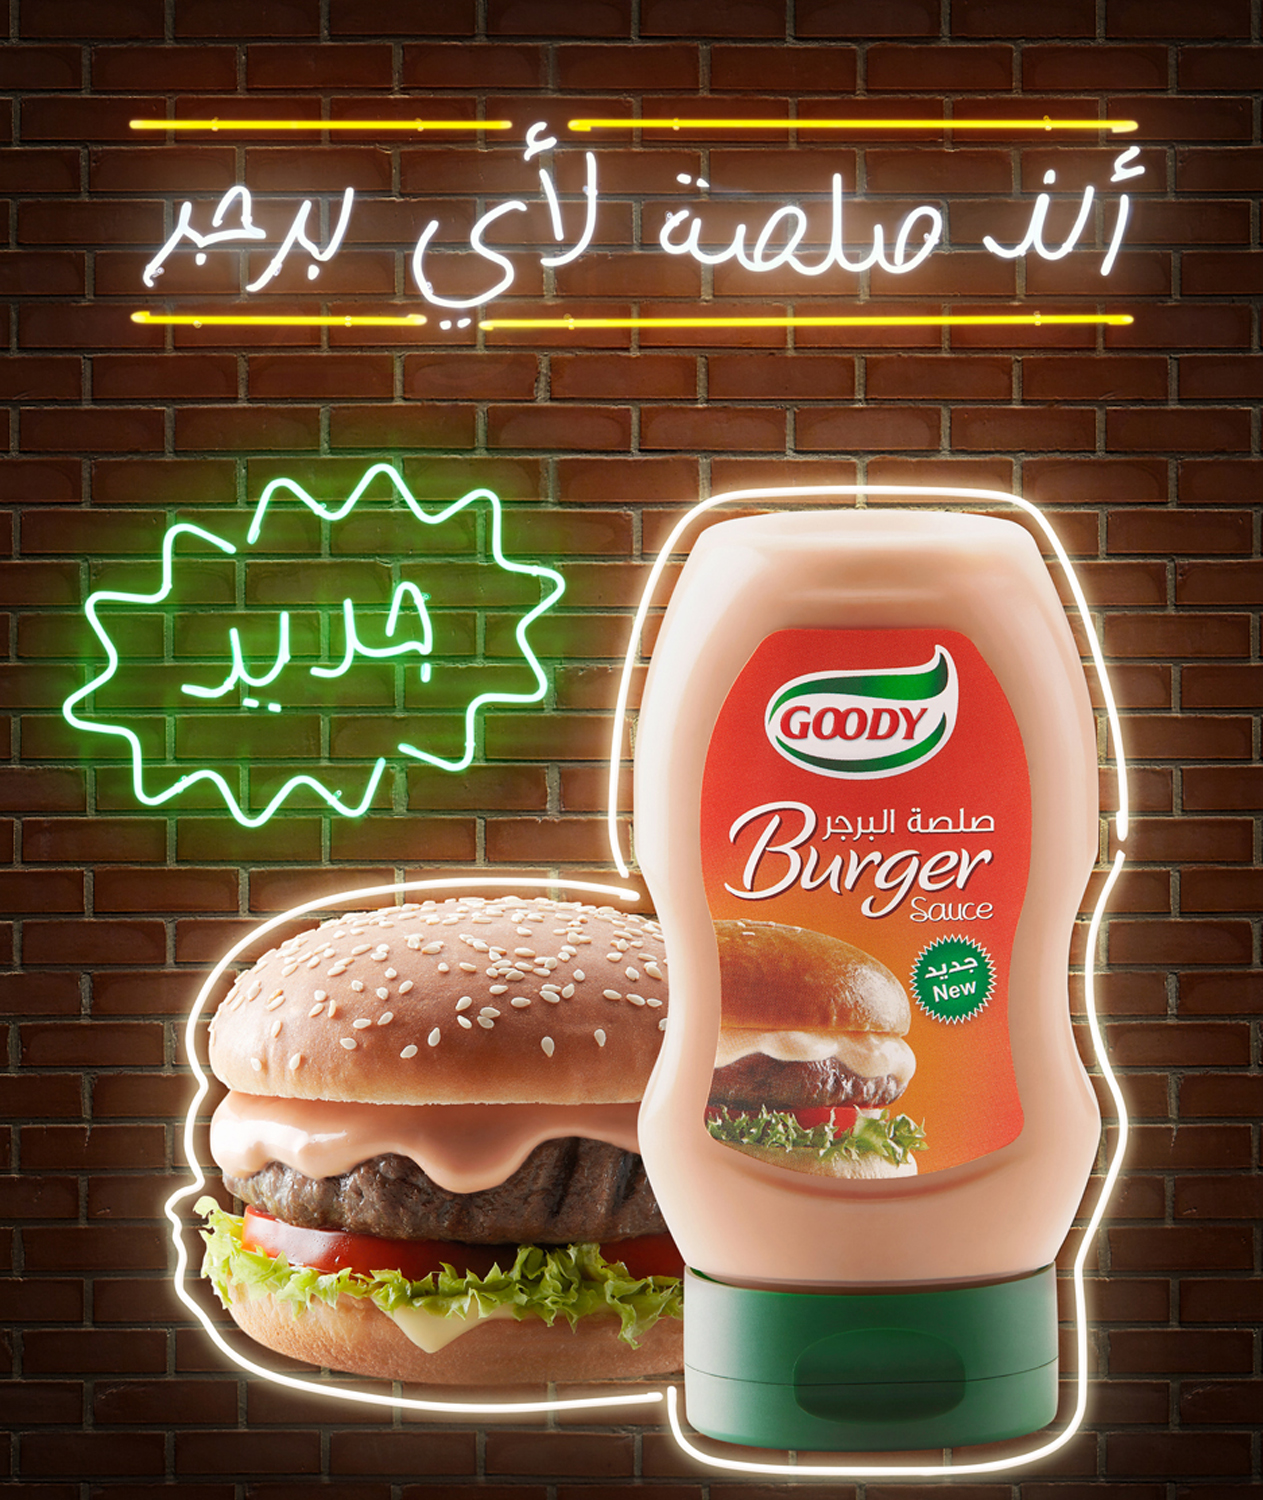 Goody launched Burger Sauce